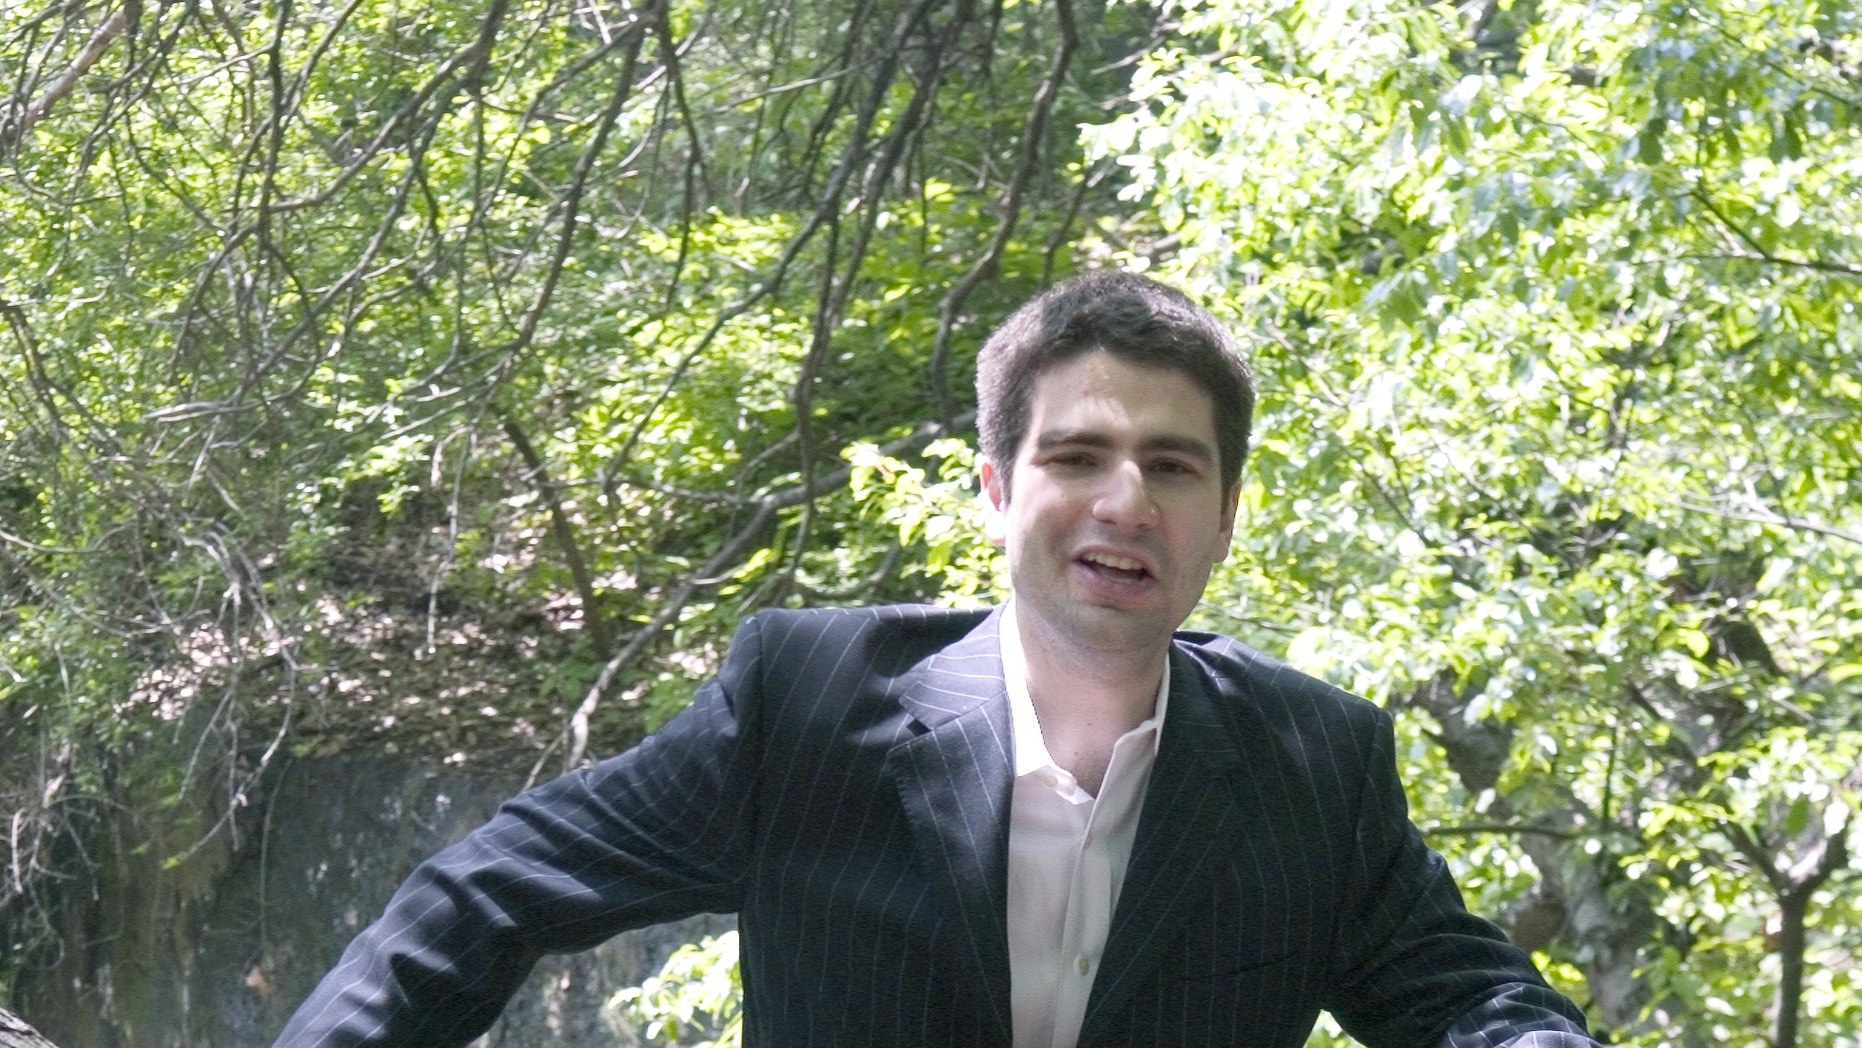 May 17, 2006. Author Ned Vizzini poses for a photo in New York's Central Park. Vizzini, a popular young adult author and television writer who wrote candidly and humorously about his struggles with depression, has committed suicide. He was 32.